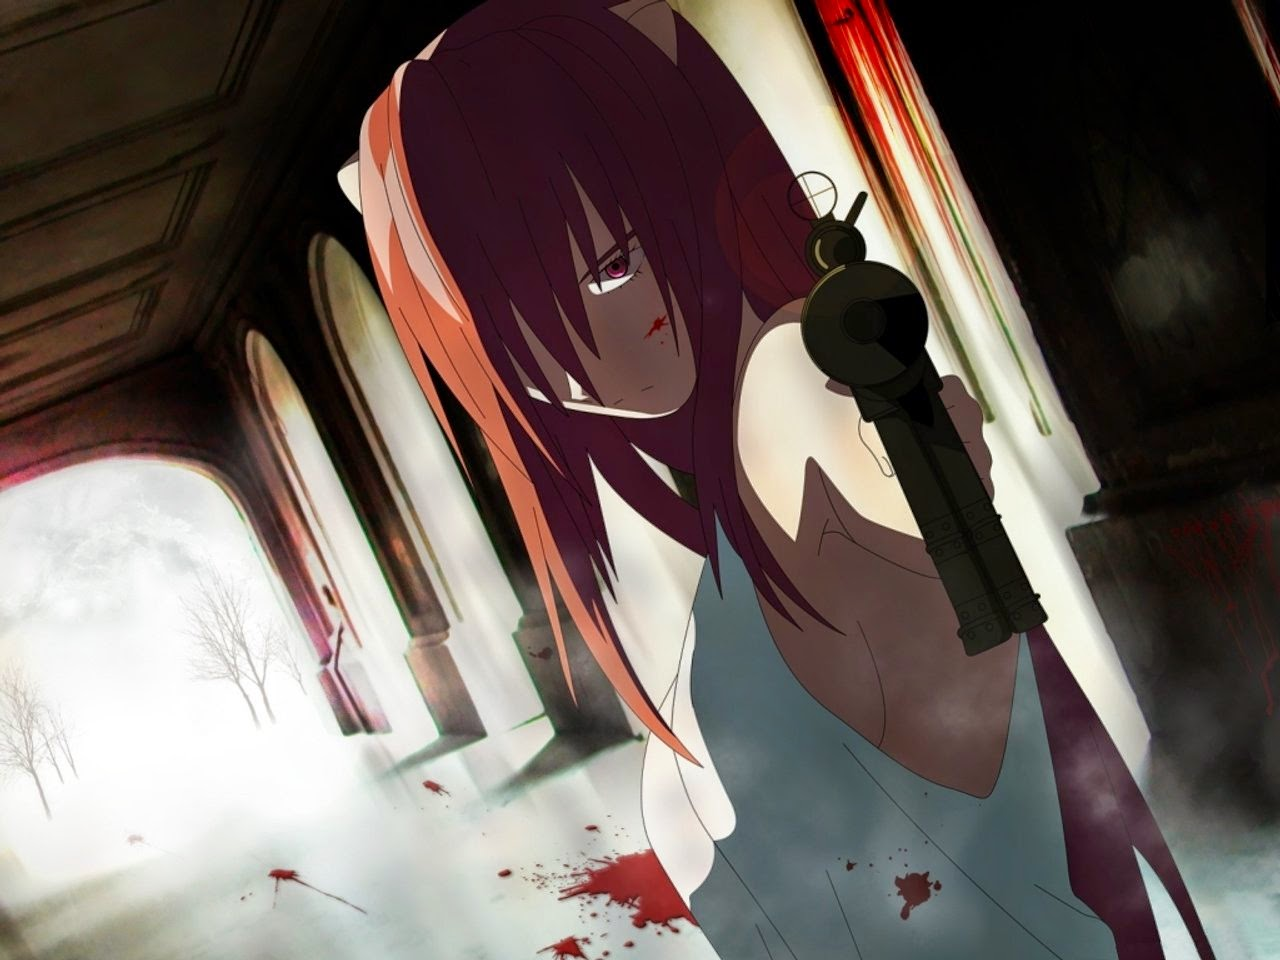 Anime Review - Elfen Lied